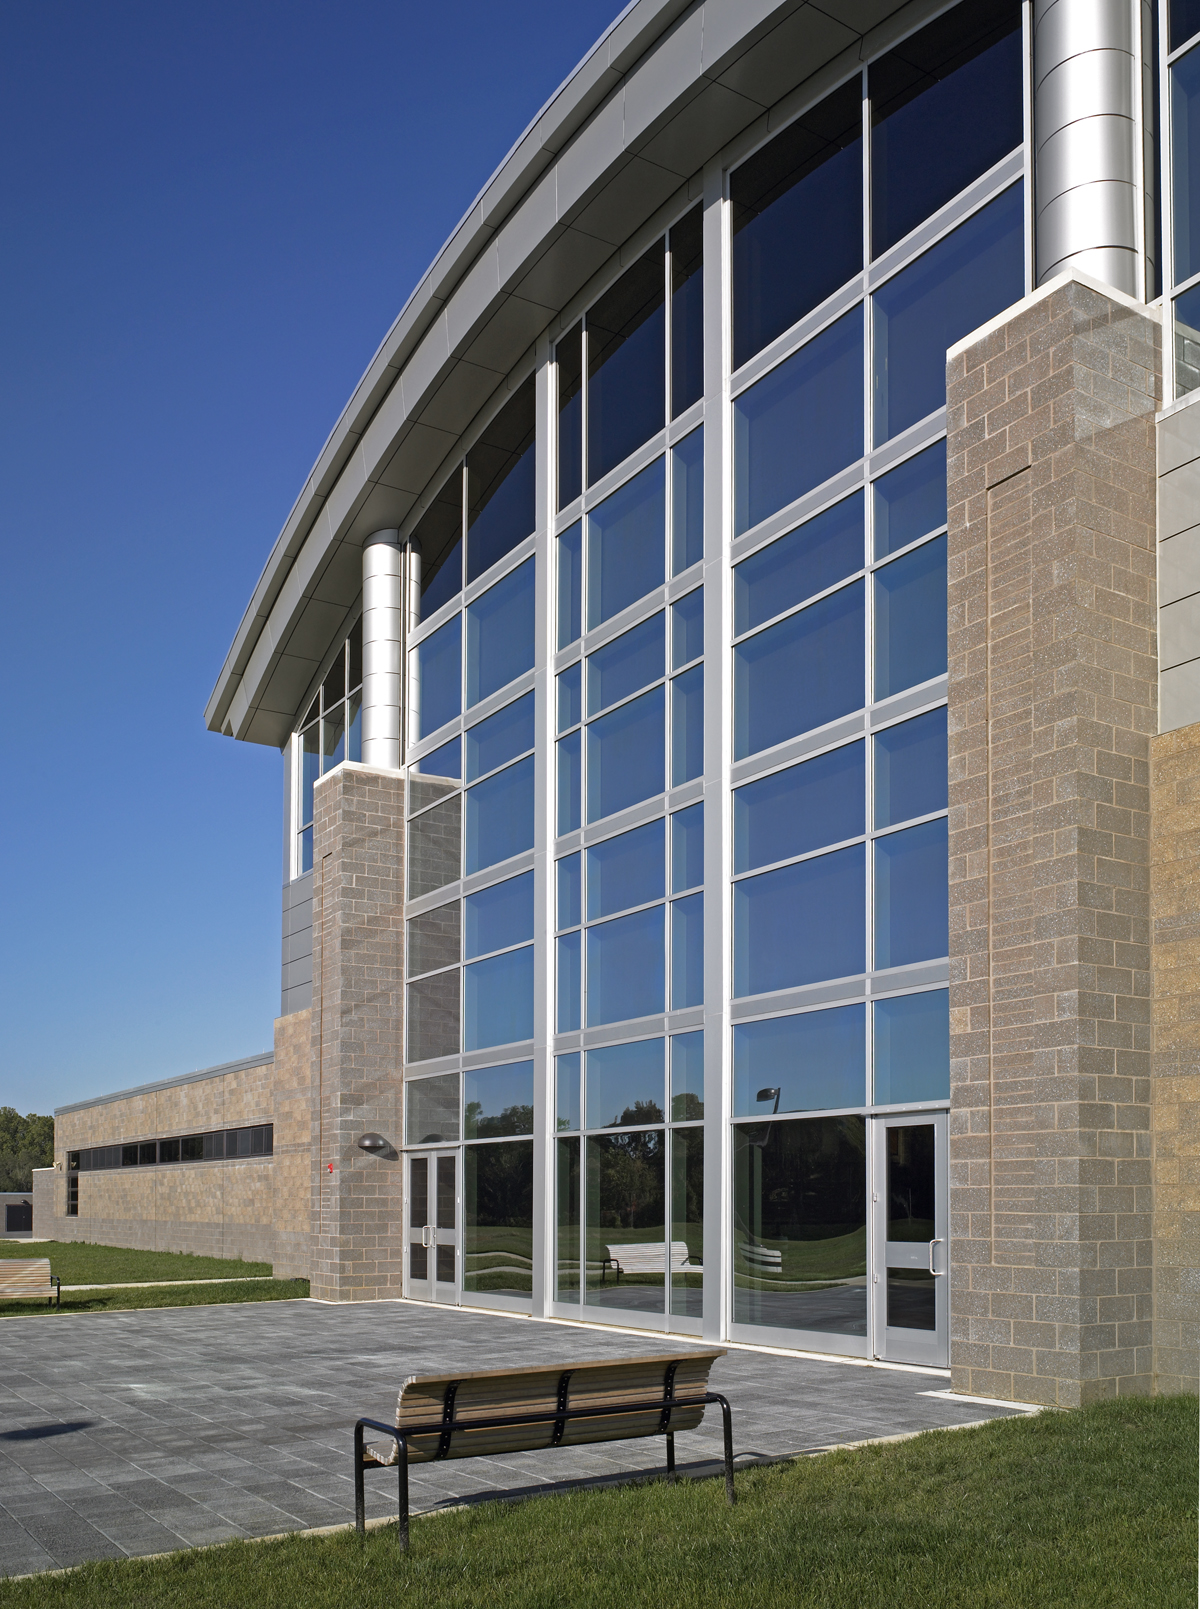 Monmouth_County_Biotechnology_Vocational_Exterior_01_small.jpg